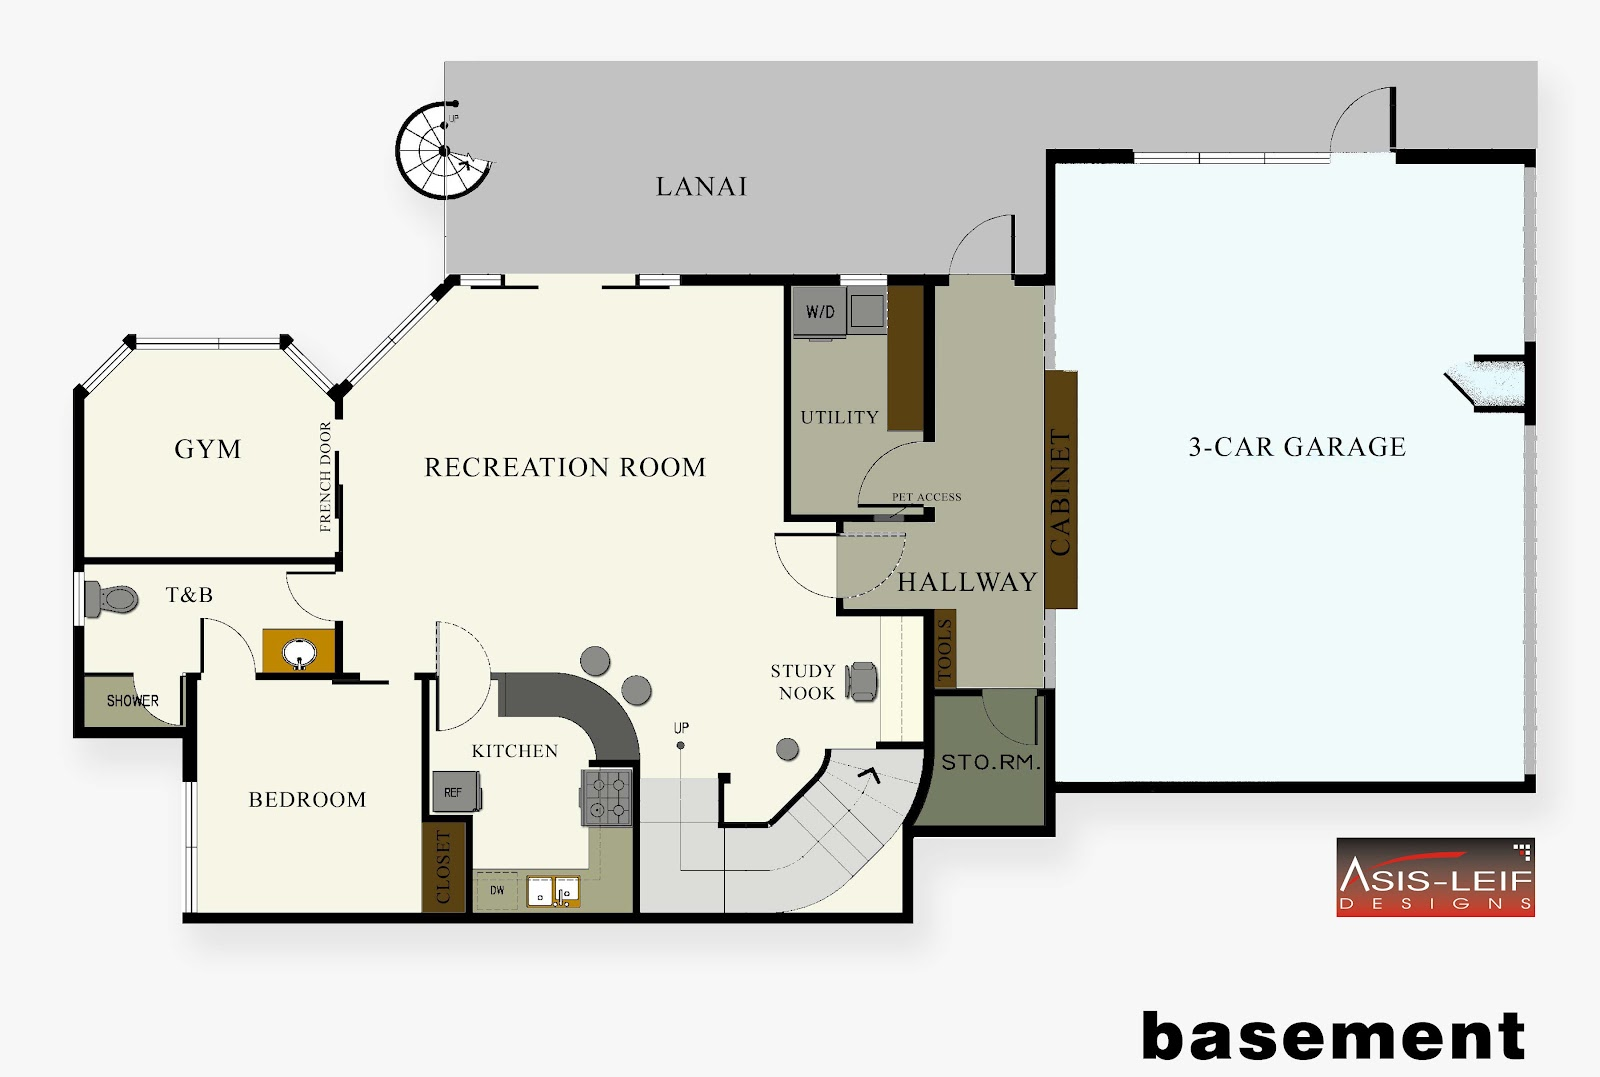 20 Artistic Basement Plans Layout Home Building Plans